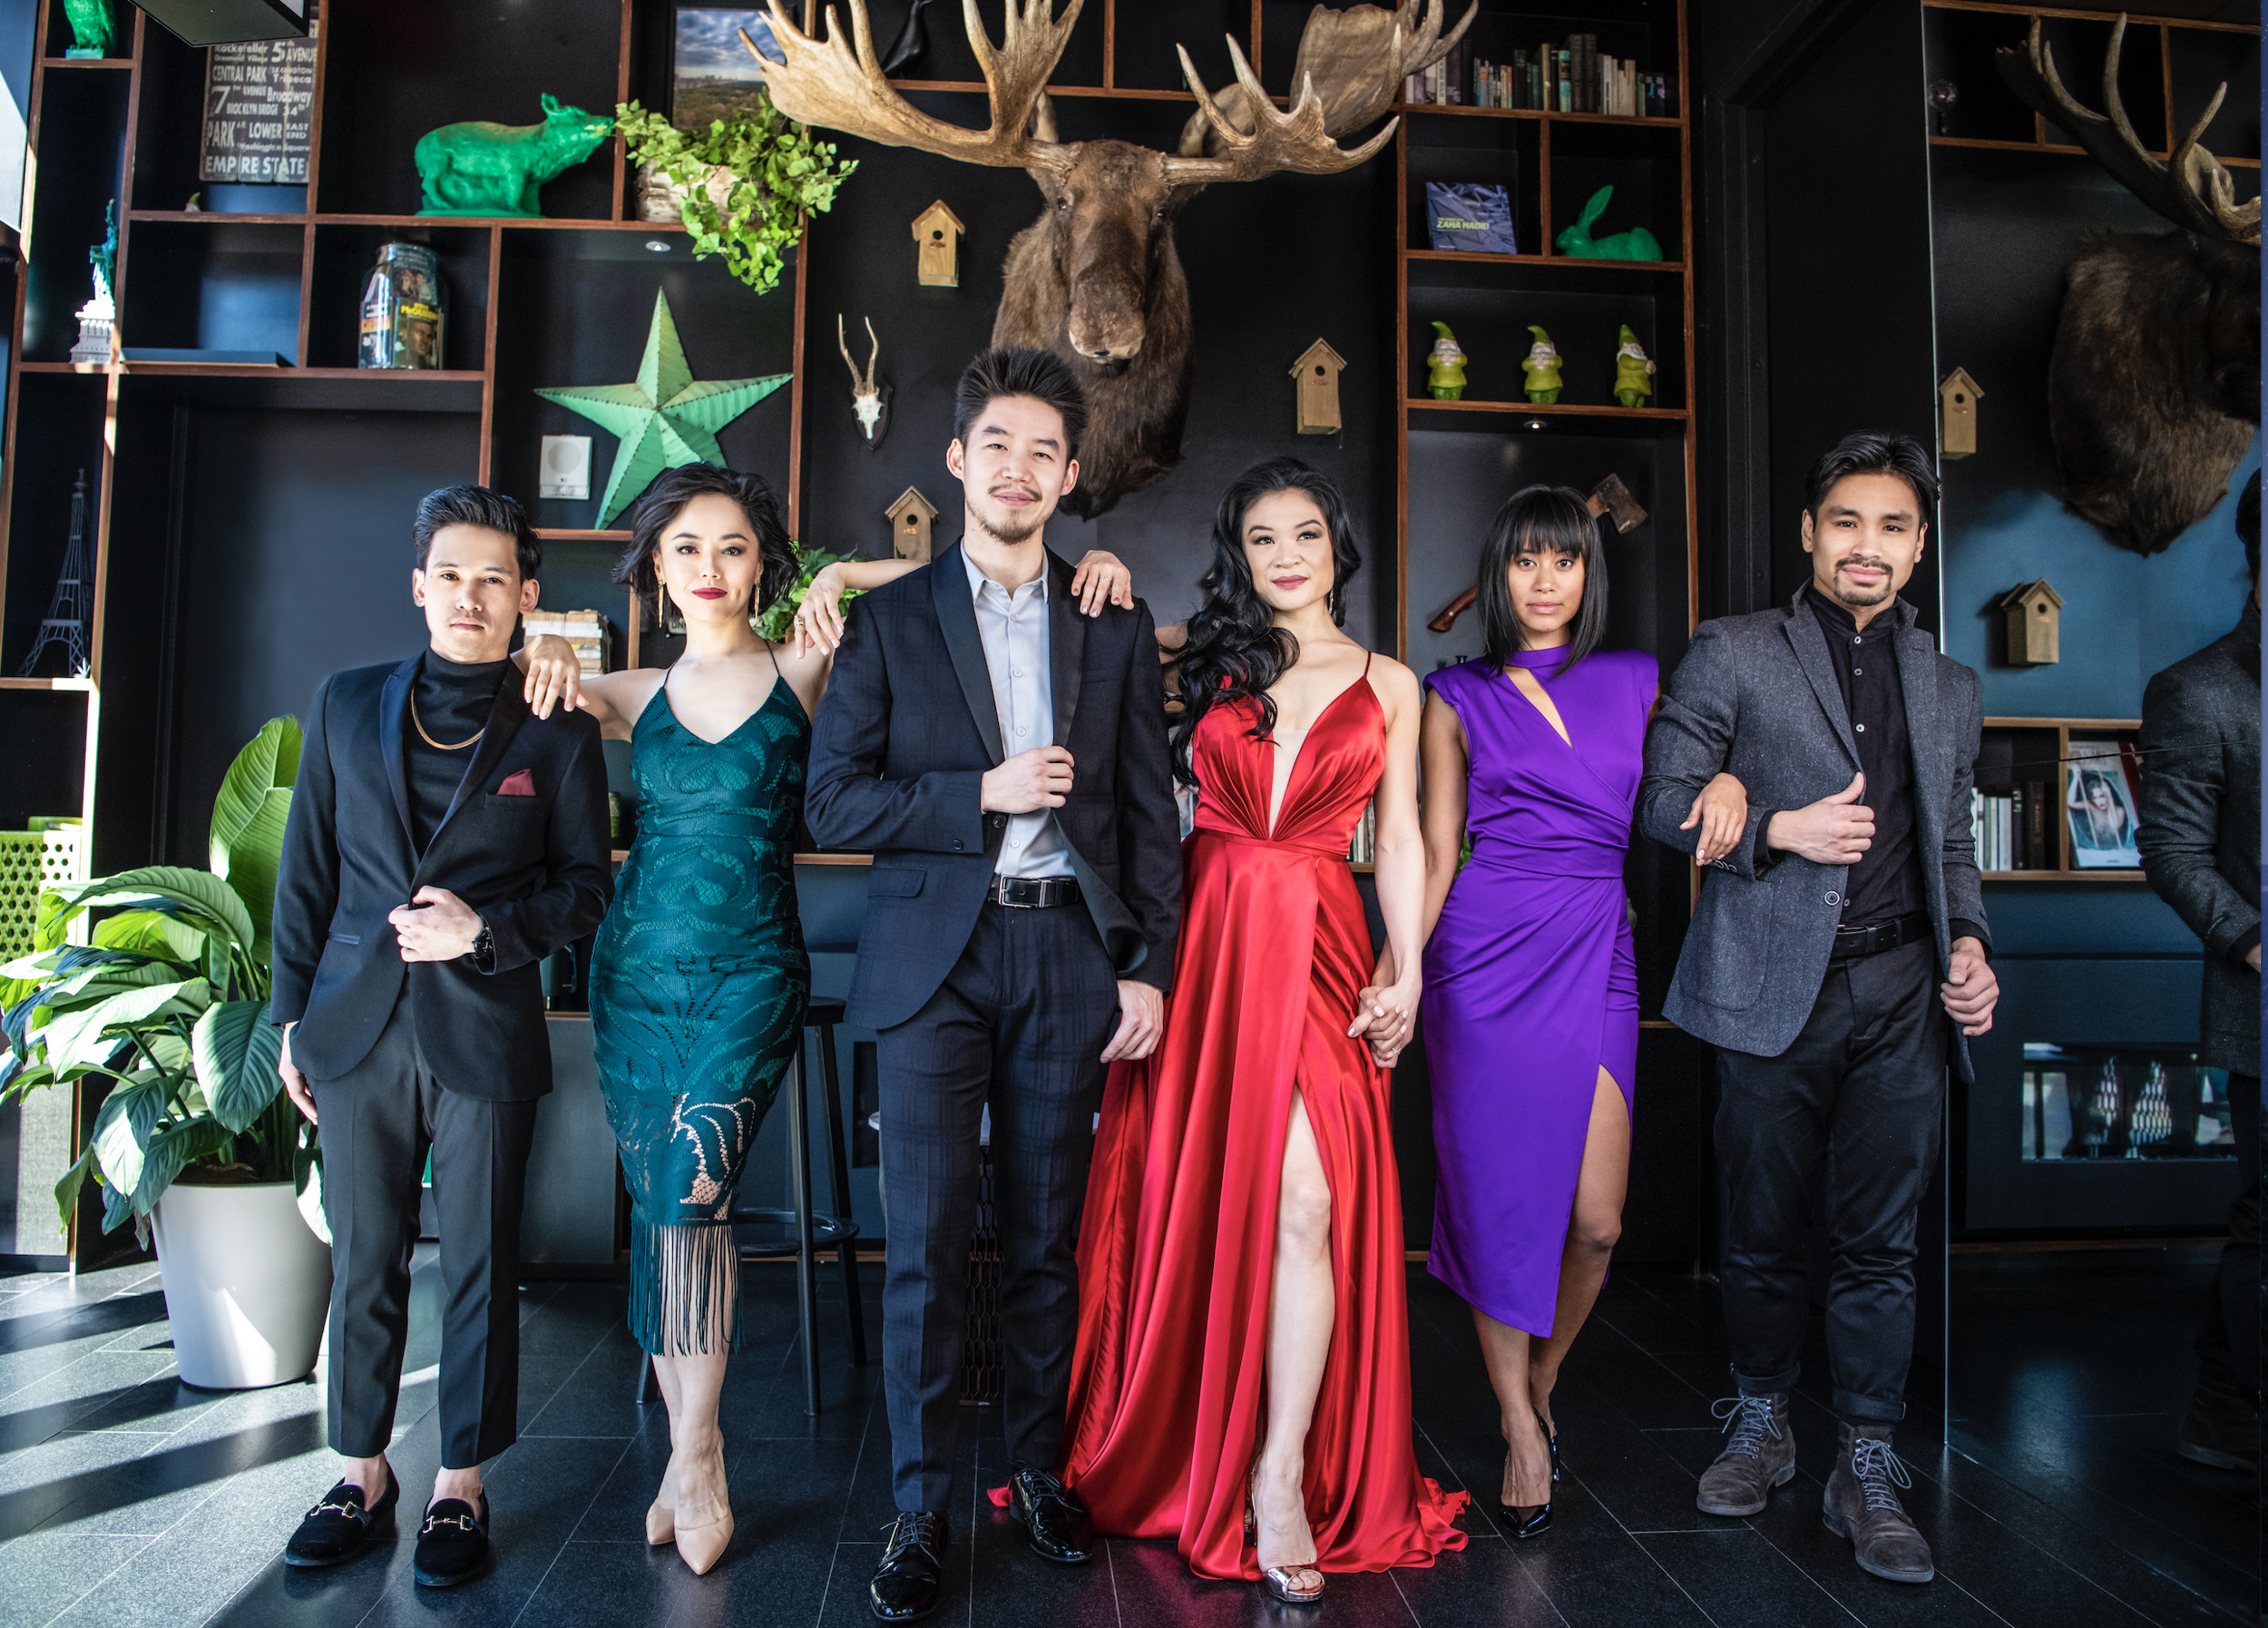 Nico DeJesus, Minami Yusuf, Eddy Lee, Kristen Faith Oei, Karla Puno Garcia and Angelo Soriano (Photo by Billy Bustamante for The Ensemblist)